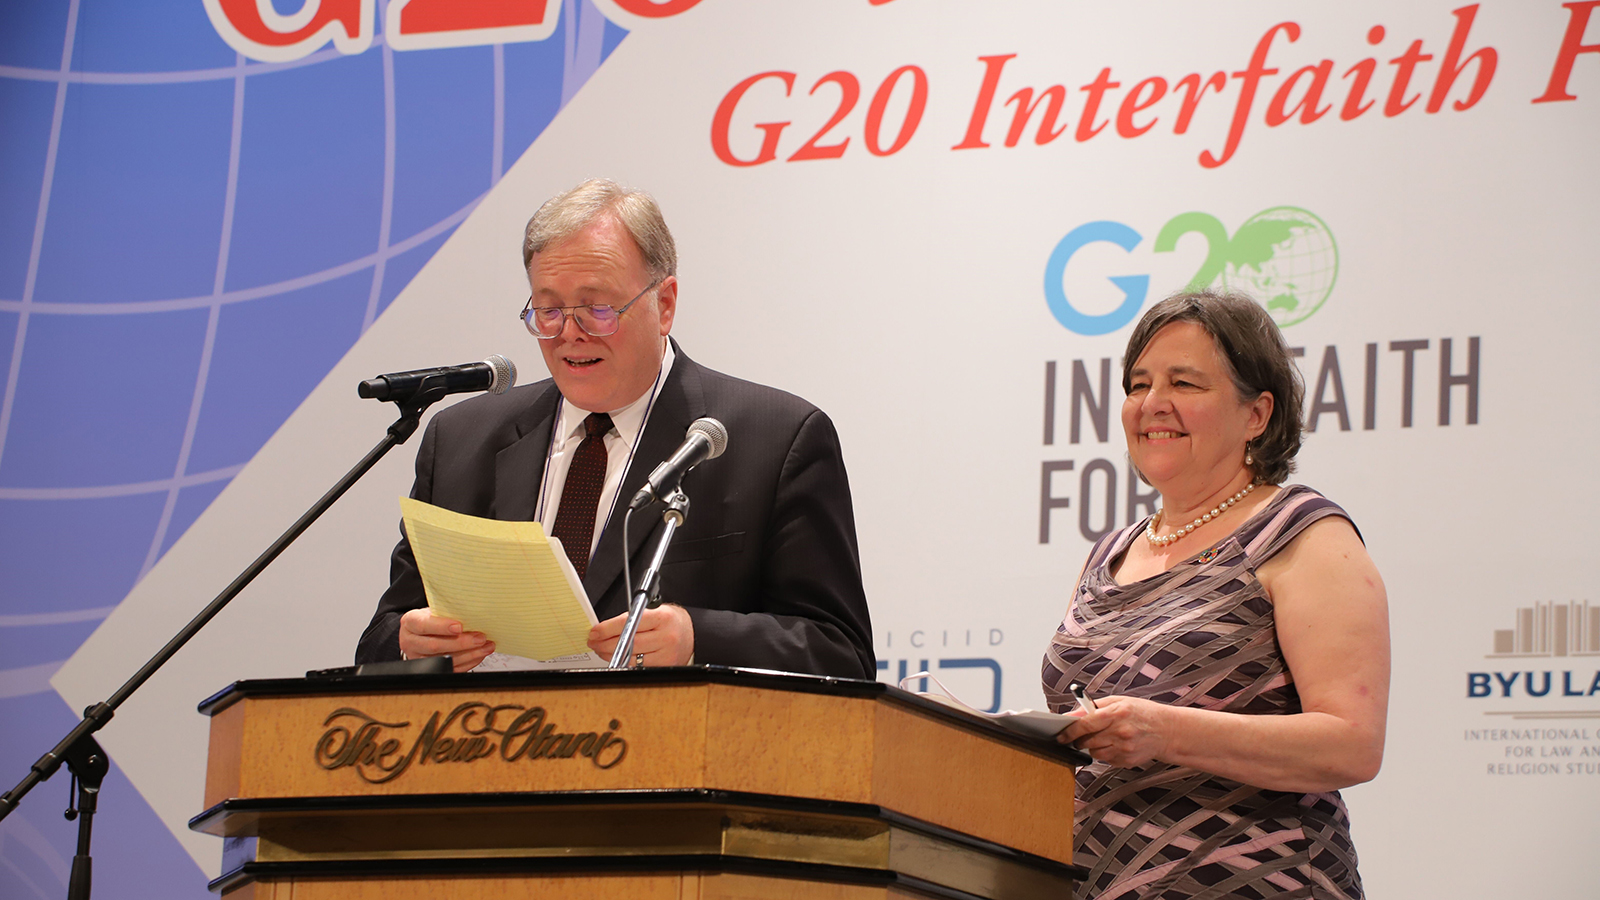 Cole Durham and Katherine Marshall presenting at the 2019 G20 Interfaith Forum